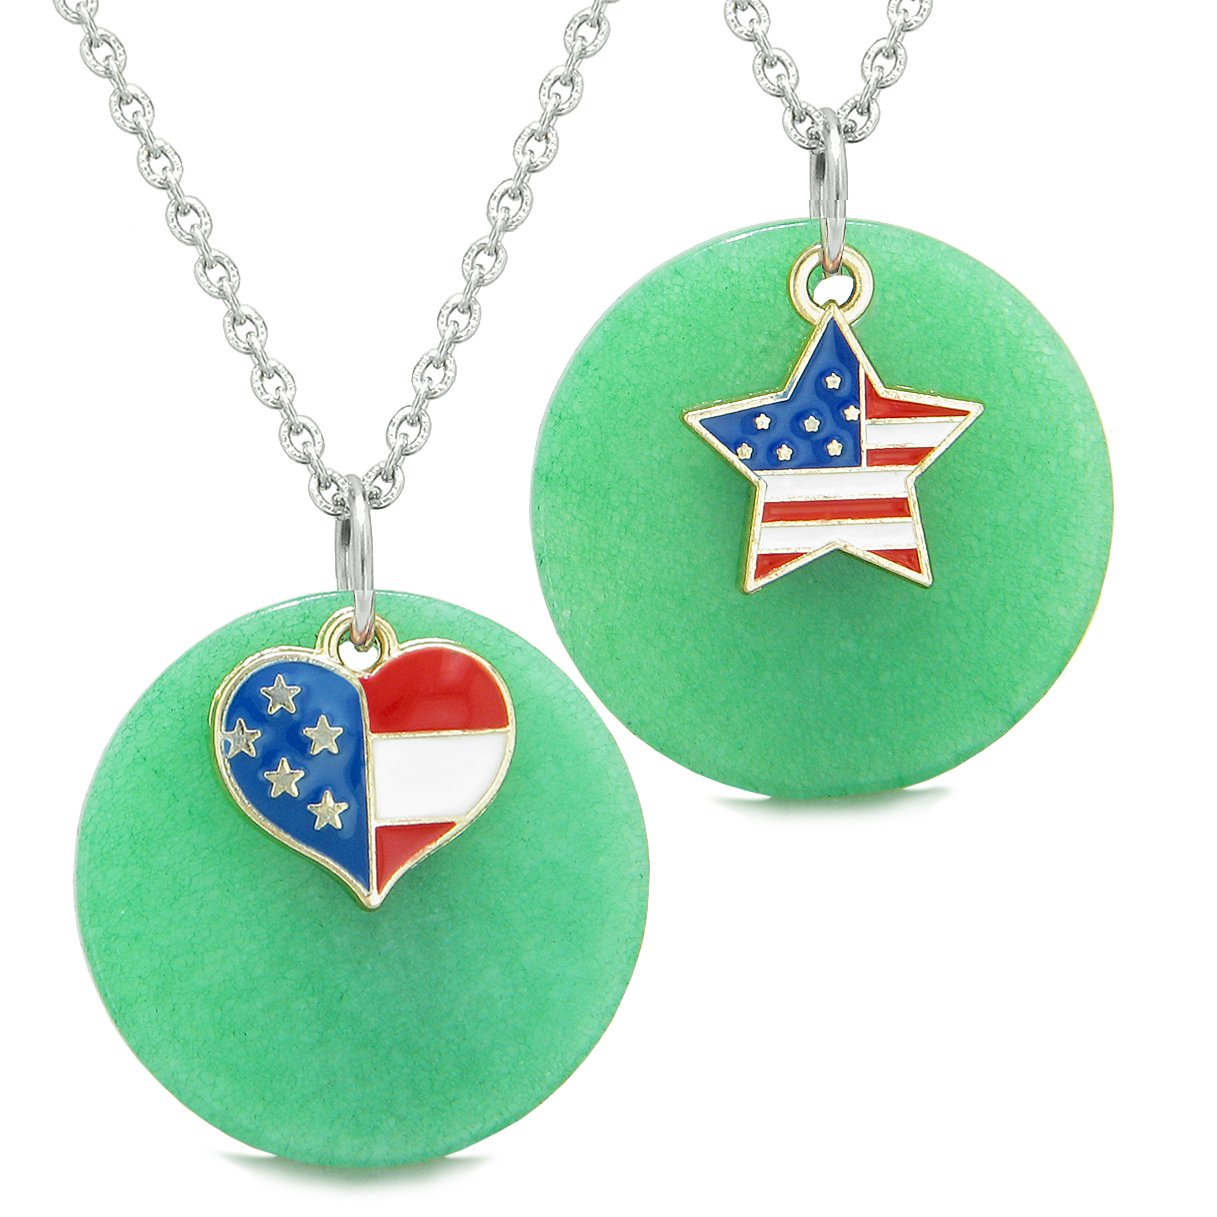 Proud American Flag Super Heart and Star Love Couples or BFF Set Deep Green Quartz Amulet Necklaces